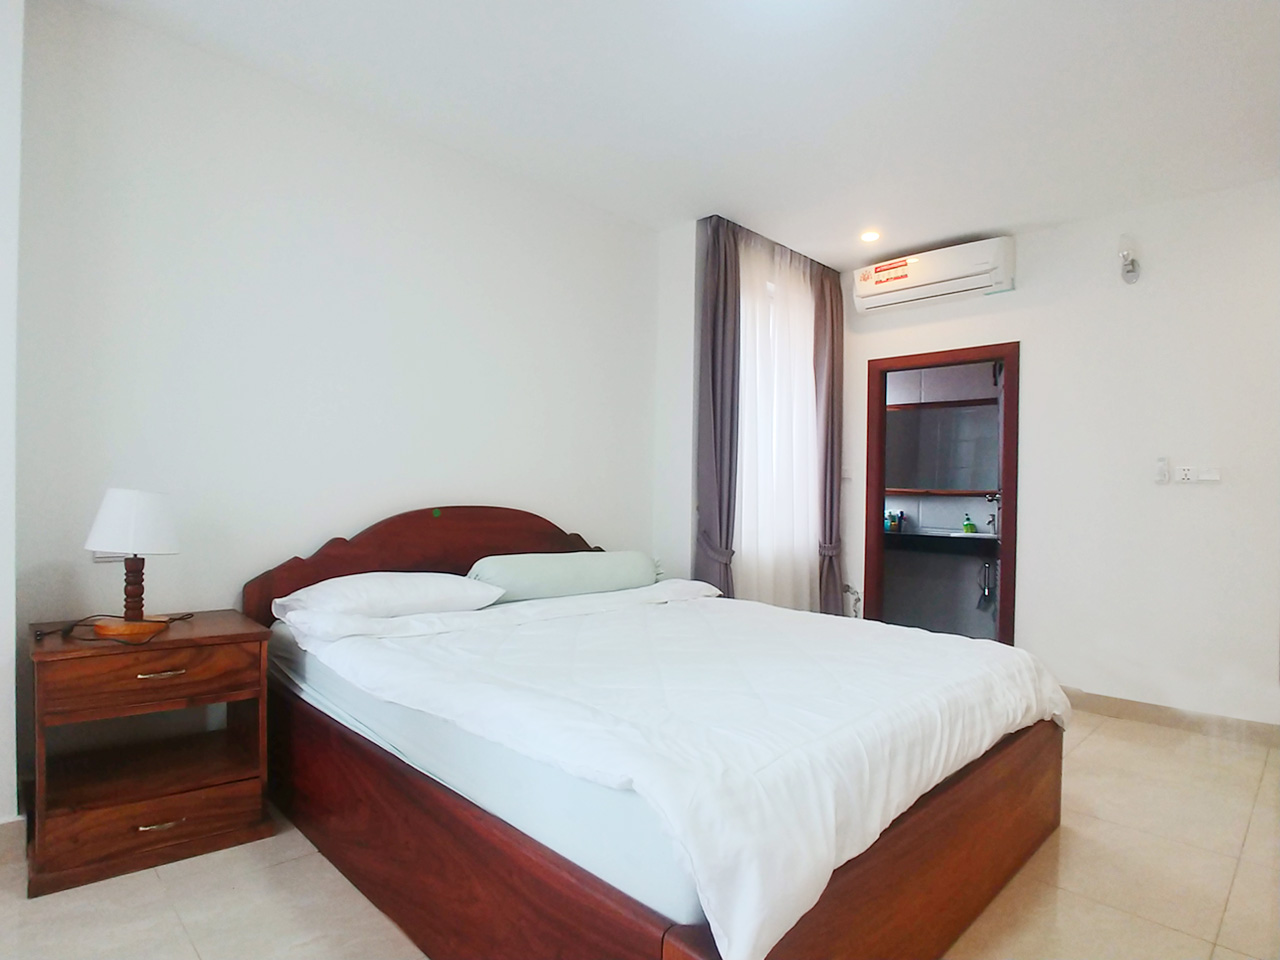 1 bedroom apartment for rent @ Toul Tumpoung area